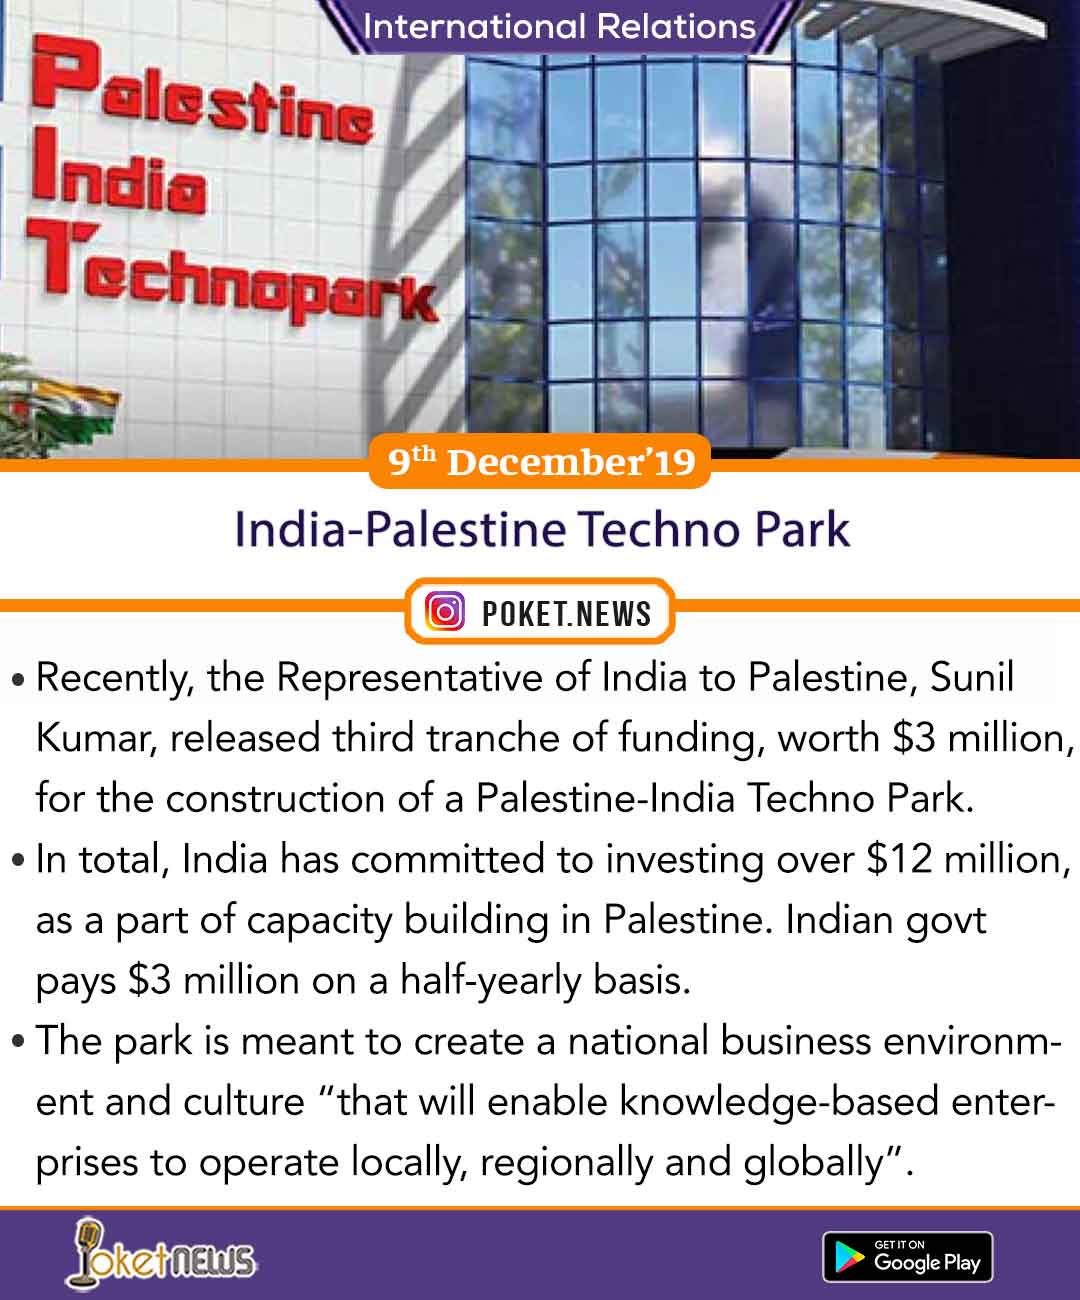 India-Palestine Techno Park